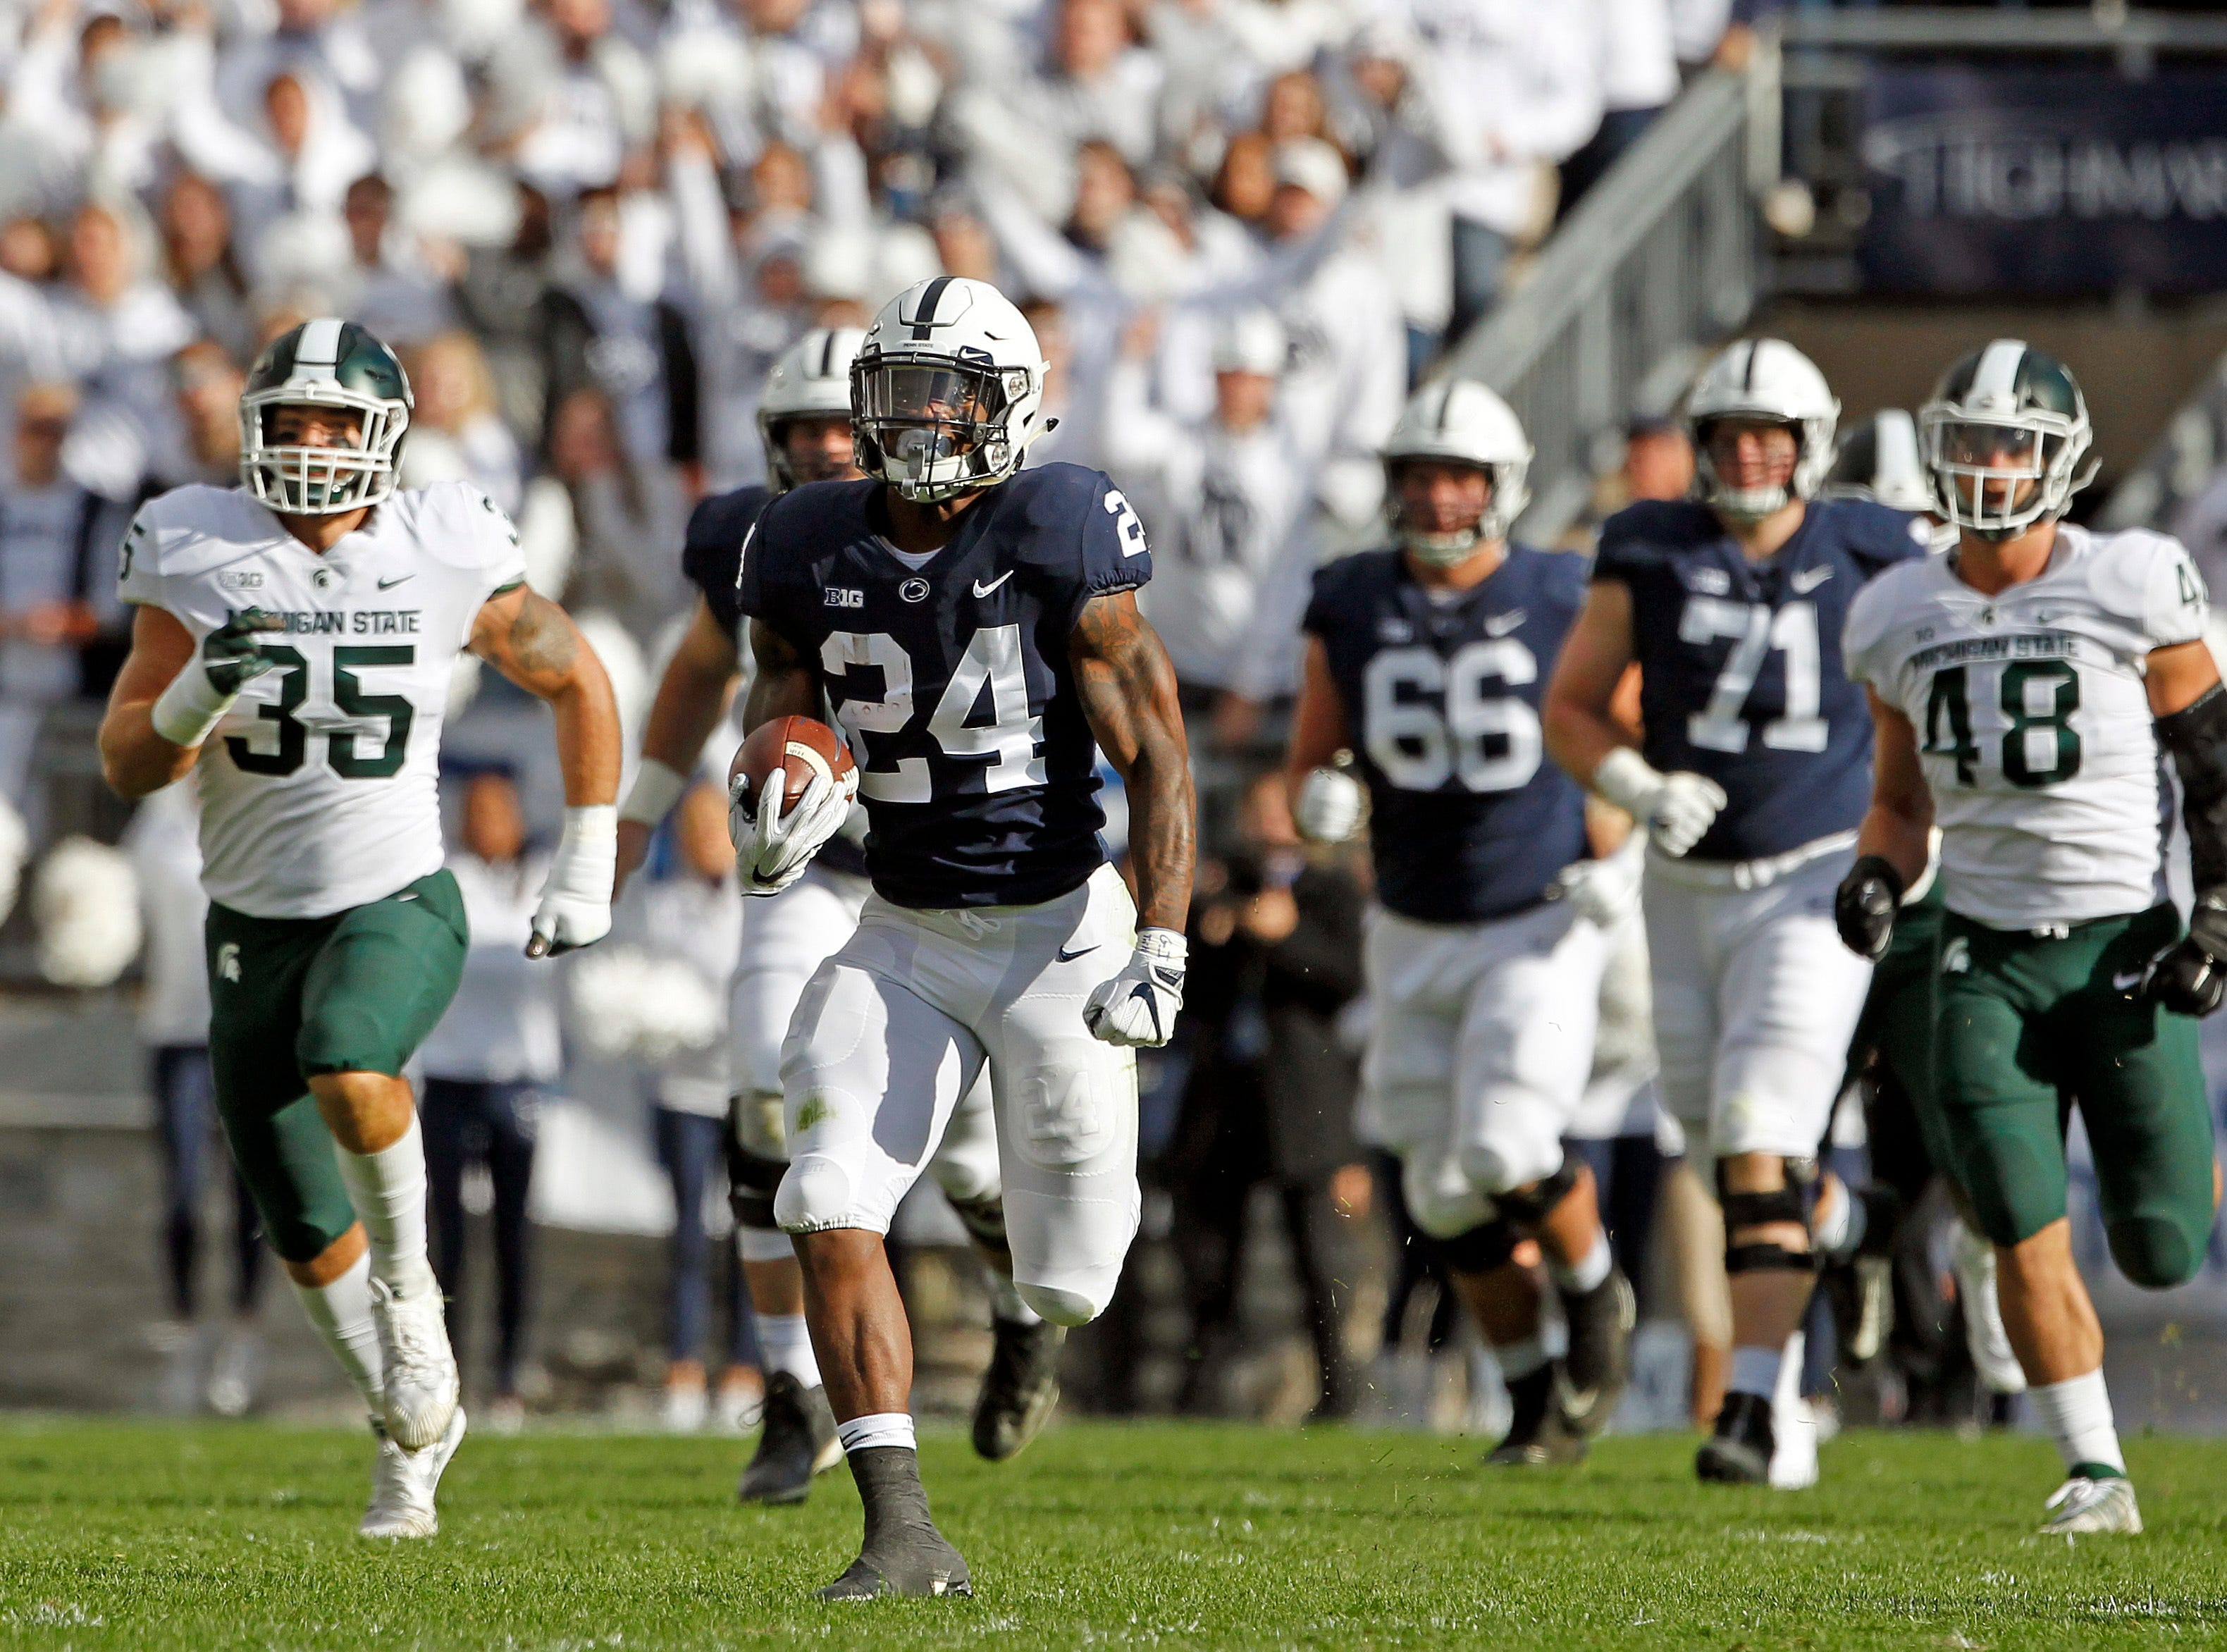 Penn State's Miles sanders (24) breaks off a long run against Michigan State during the first half of an NCAA college football game in State College, Pa., Saturday, Oct. 13, 2018.